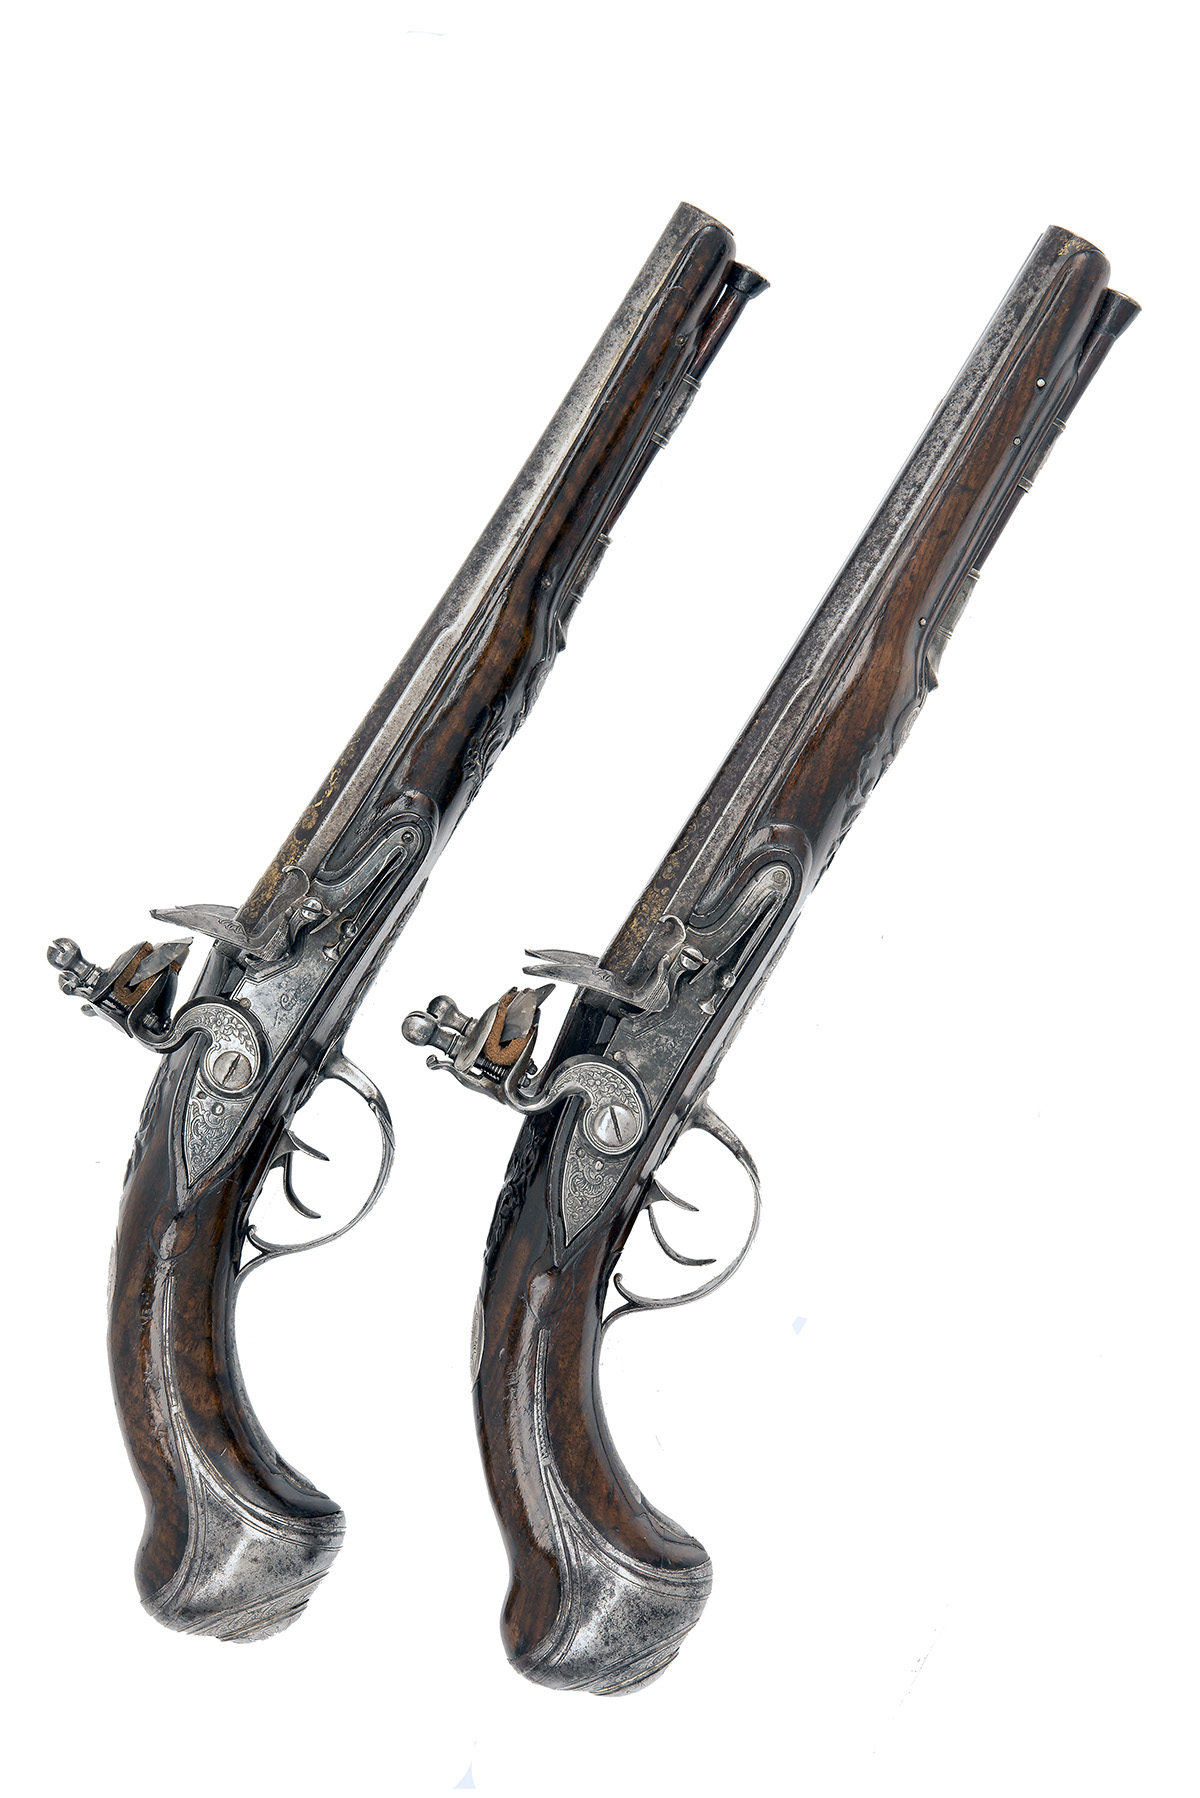 CAIRES, ST ETIENNE, FRANCE A GOOD PAIR OF 28-BORE FLINTLOCK DOUBLE-BARRELLED HOLSTER-PISTOLS, no